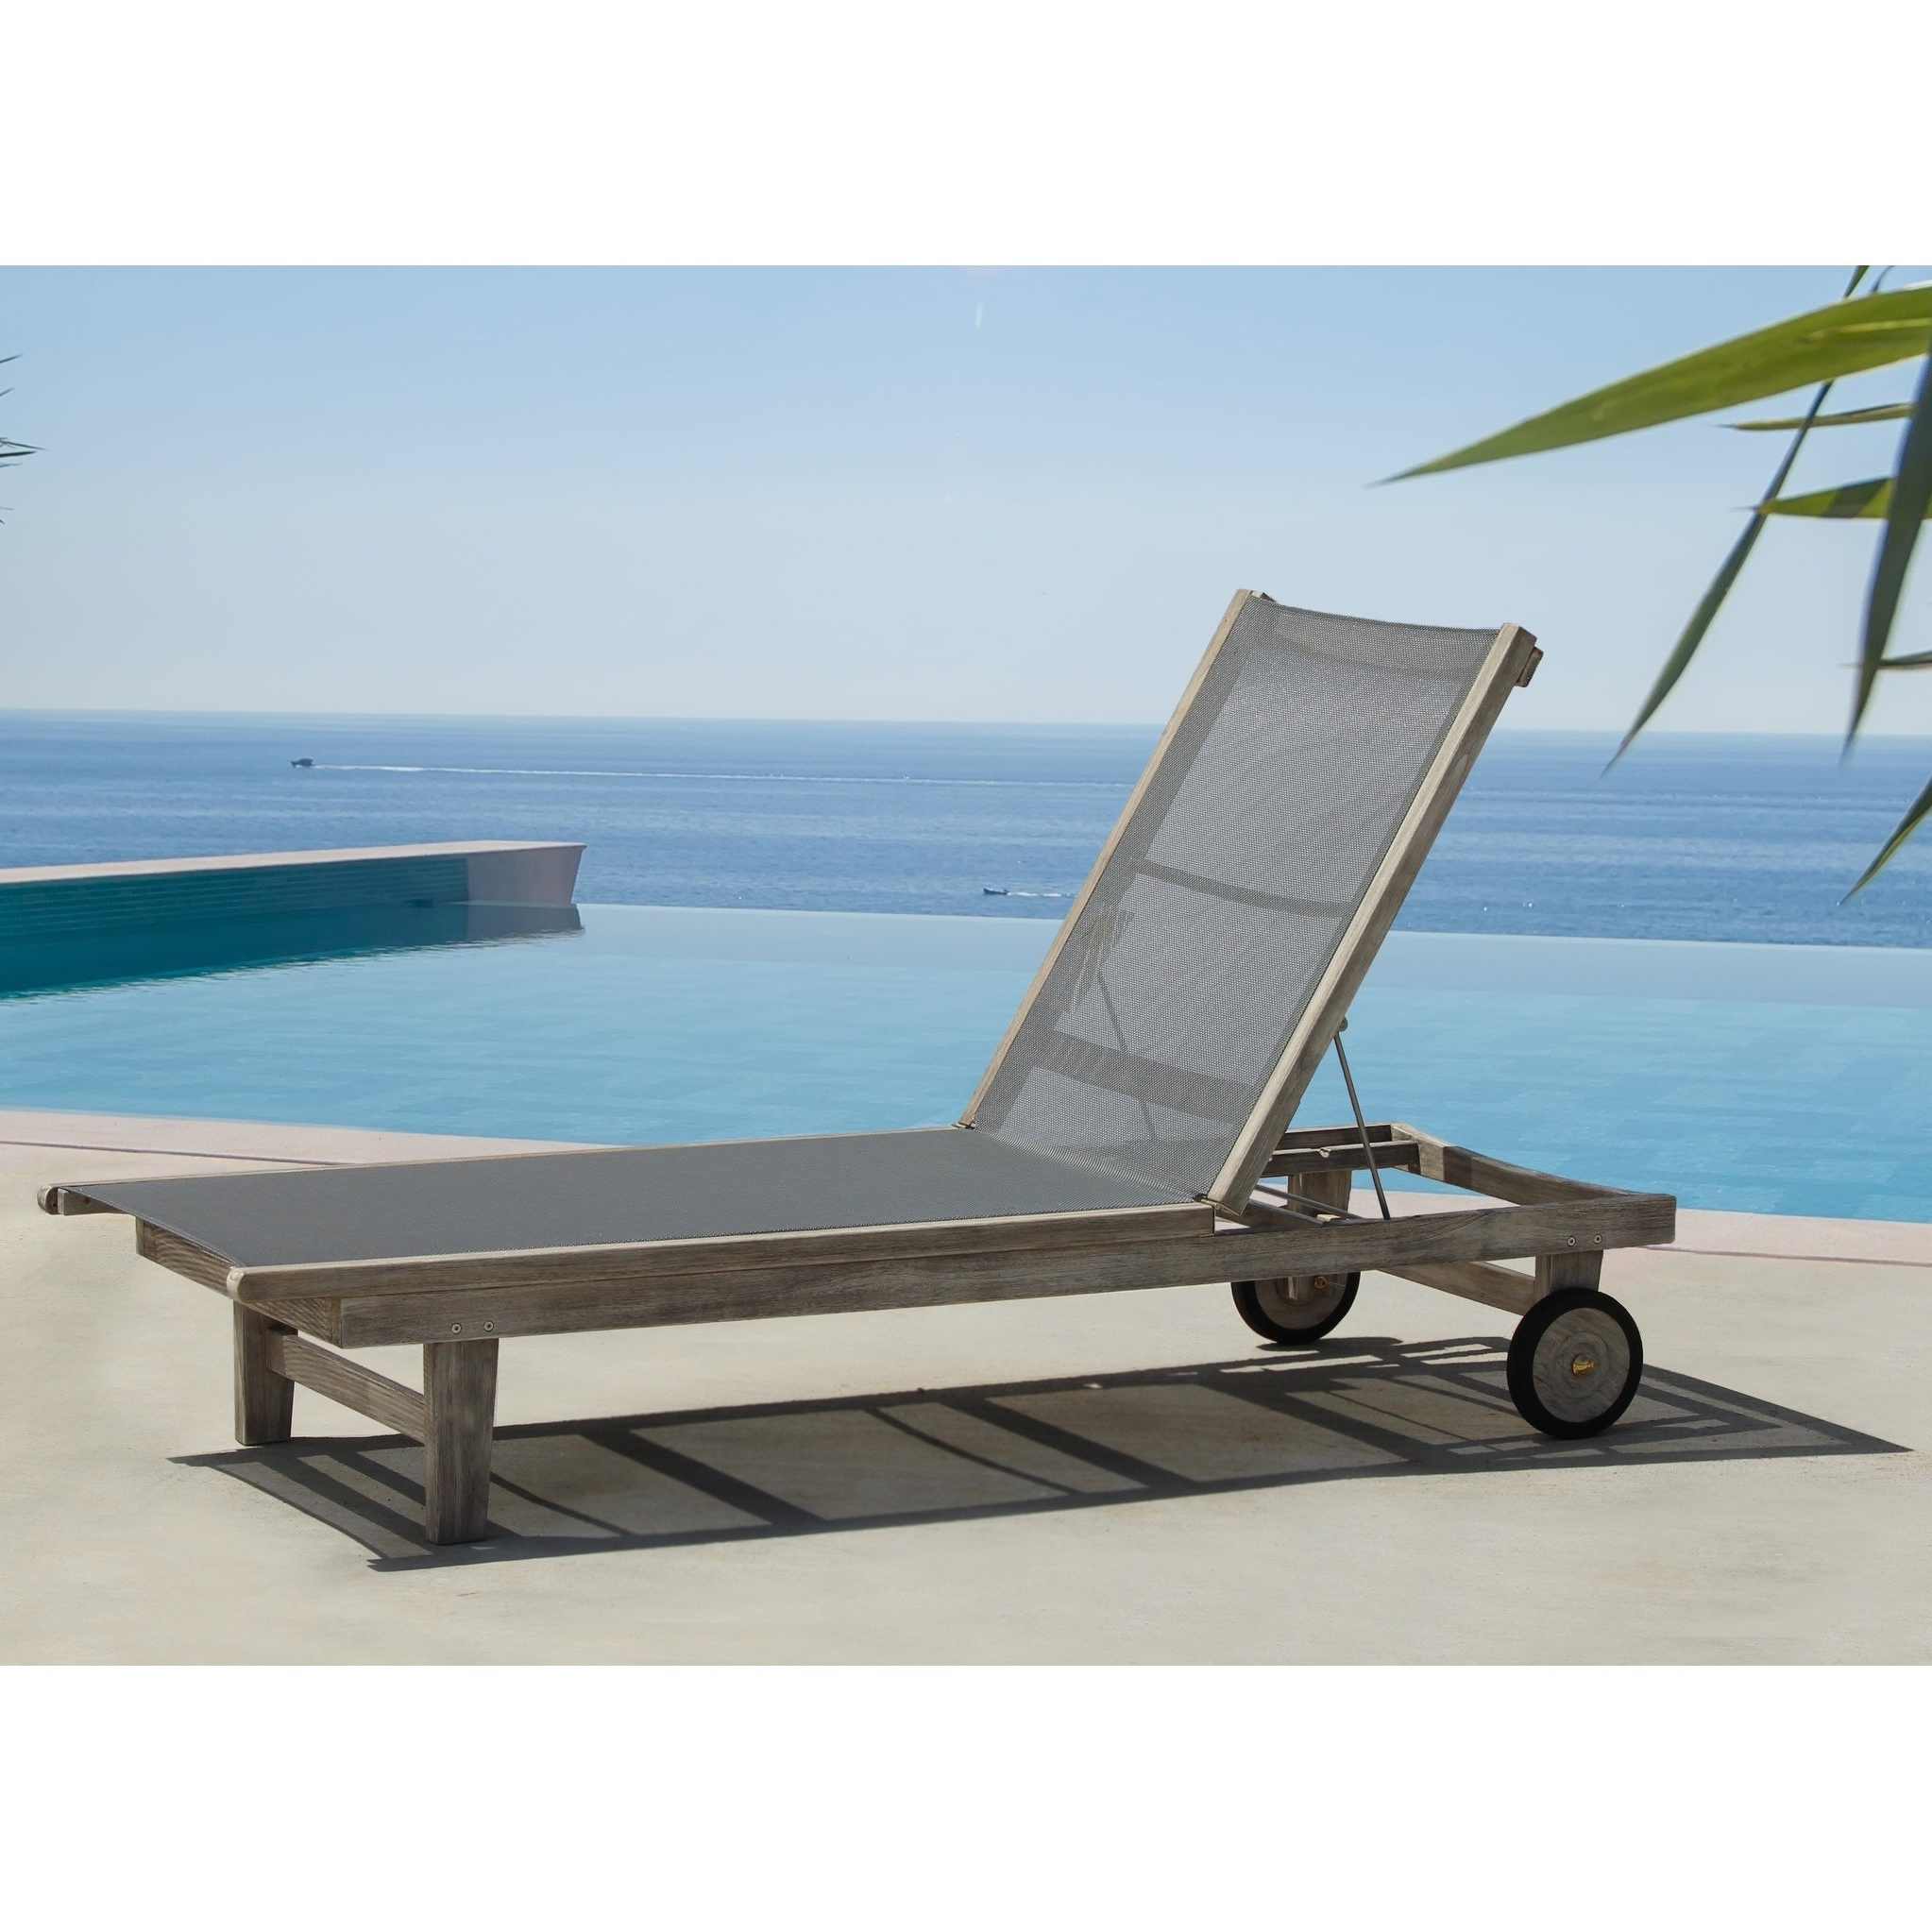 Havenside Home Surfside Driftwood Grey Teak Deck Lounge Chair With Regard To 2020 Hiteak Pearl Chaise Lounges In Black Mesh Fabric (View 9 of 25)